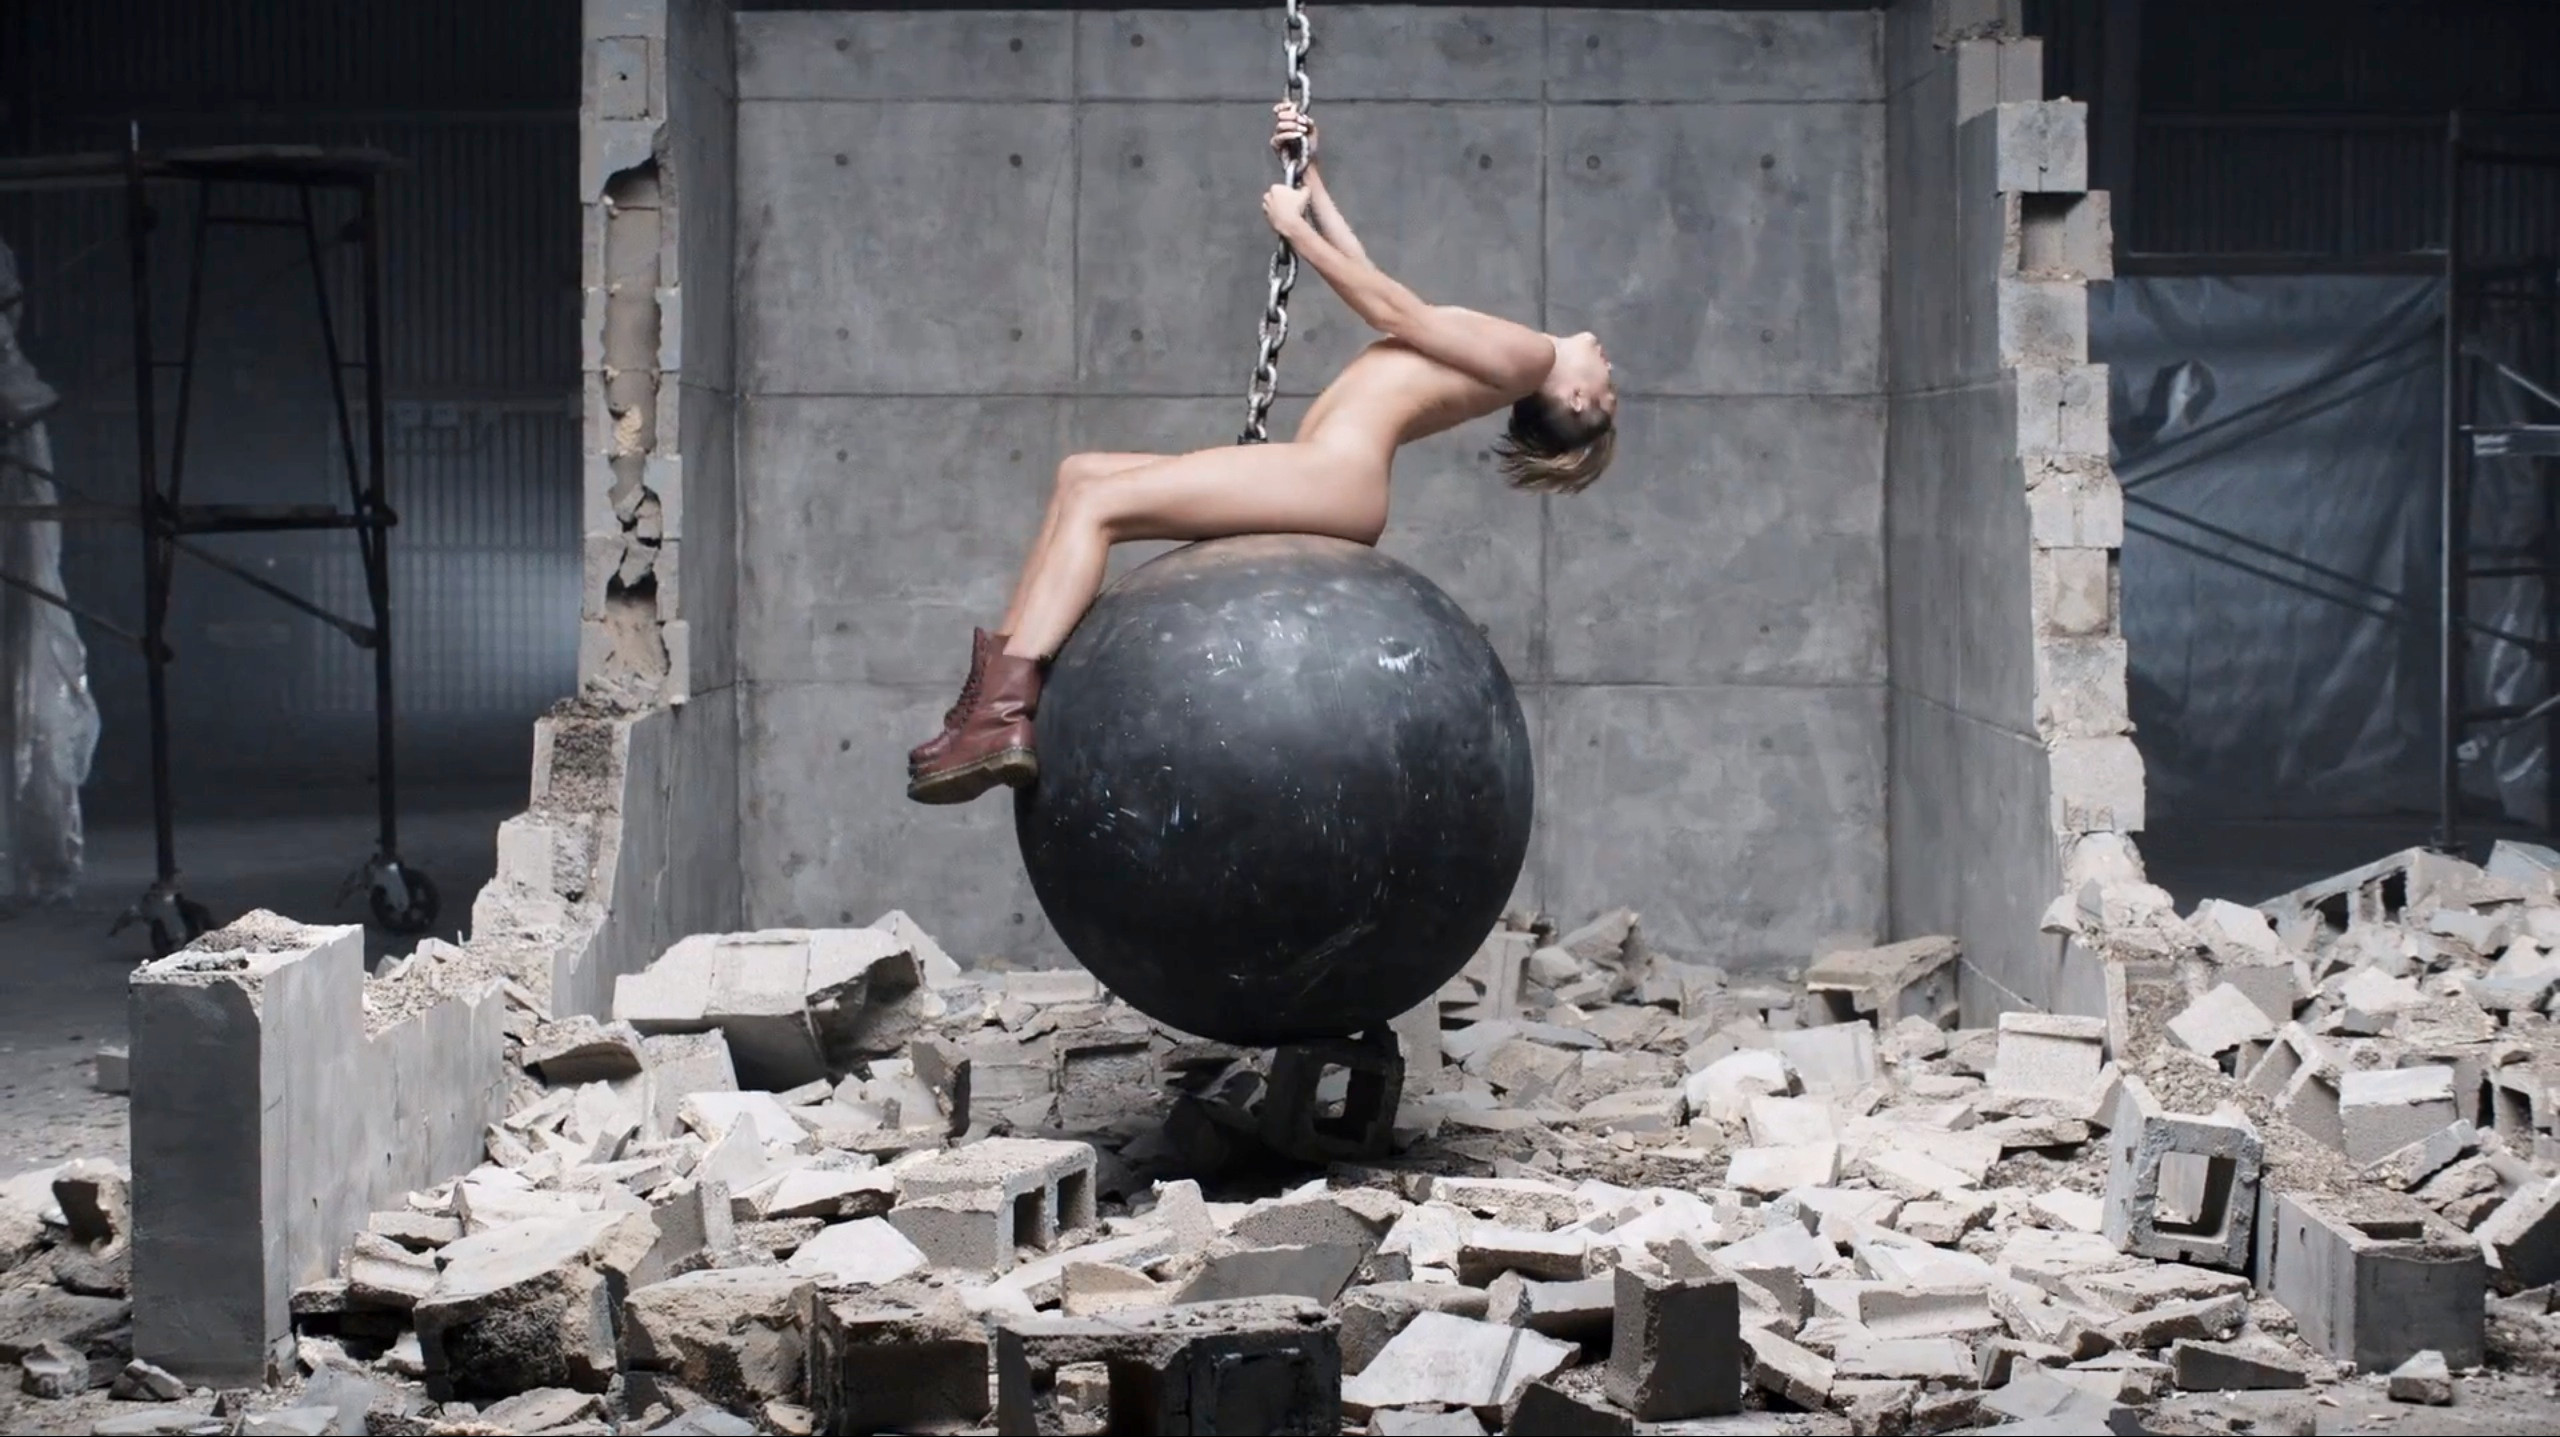 Miley Cyrus' music video for Wrecking Ball became iconic